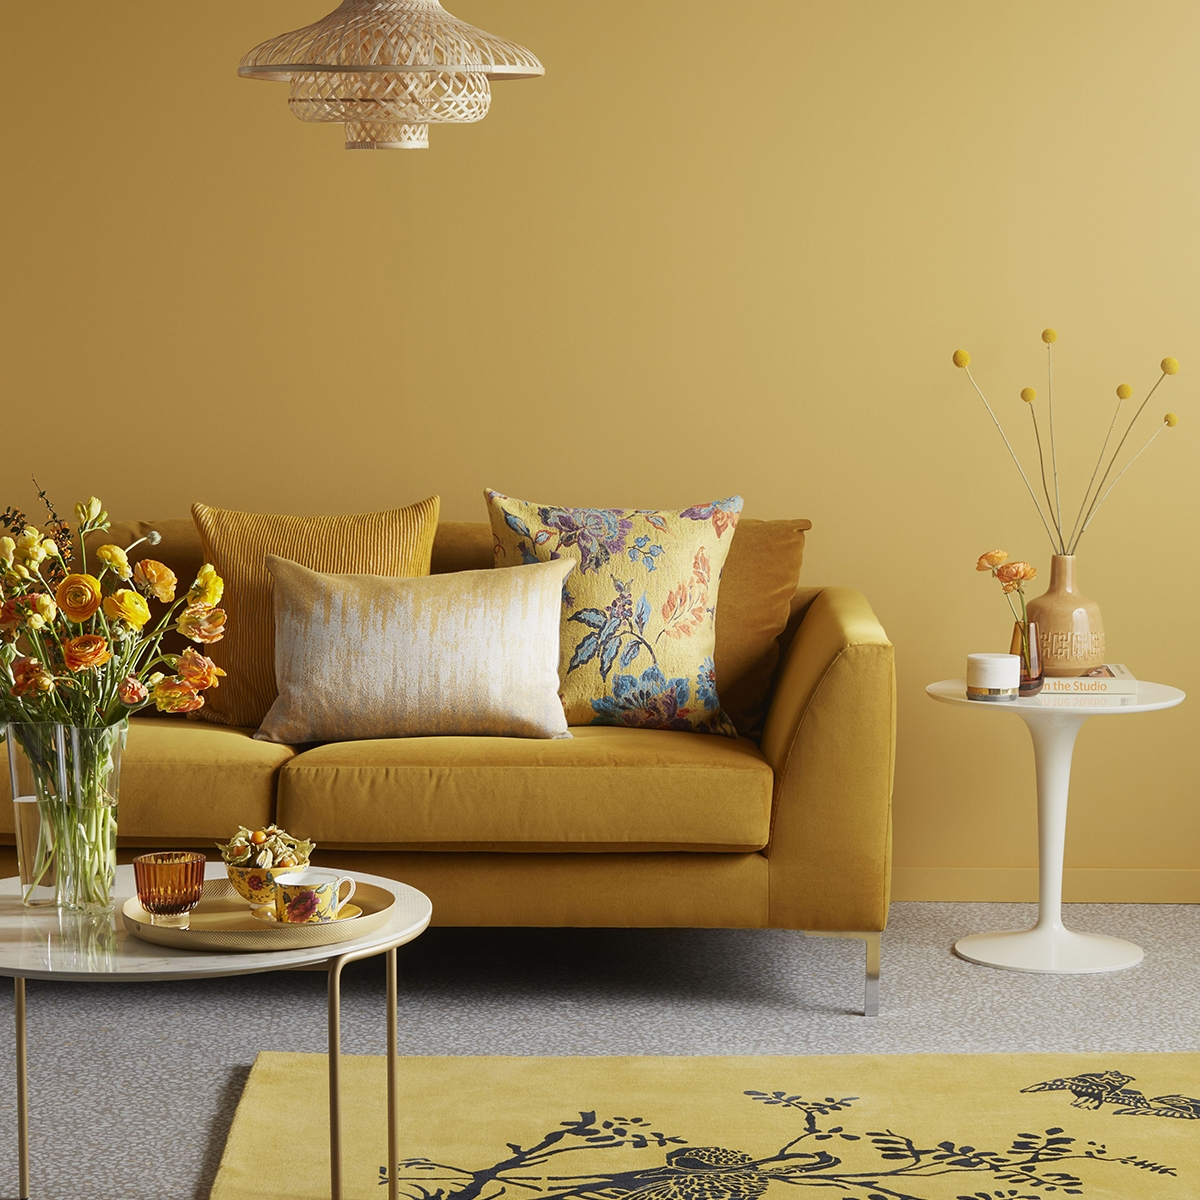 Interior Designer Sophie Robinson Selects Favourite Velvet Sofas John Lewis  Belgrave Mustard And Mustard Wall Patterned